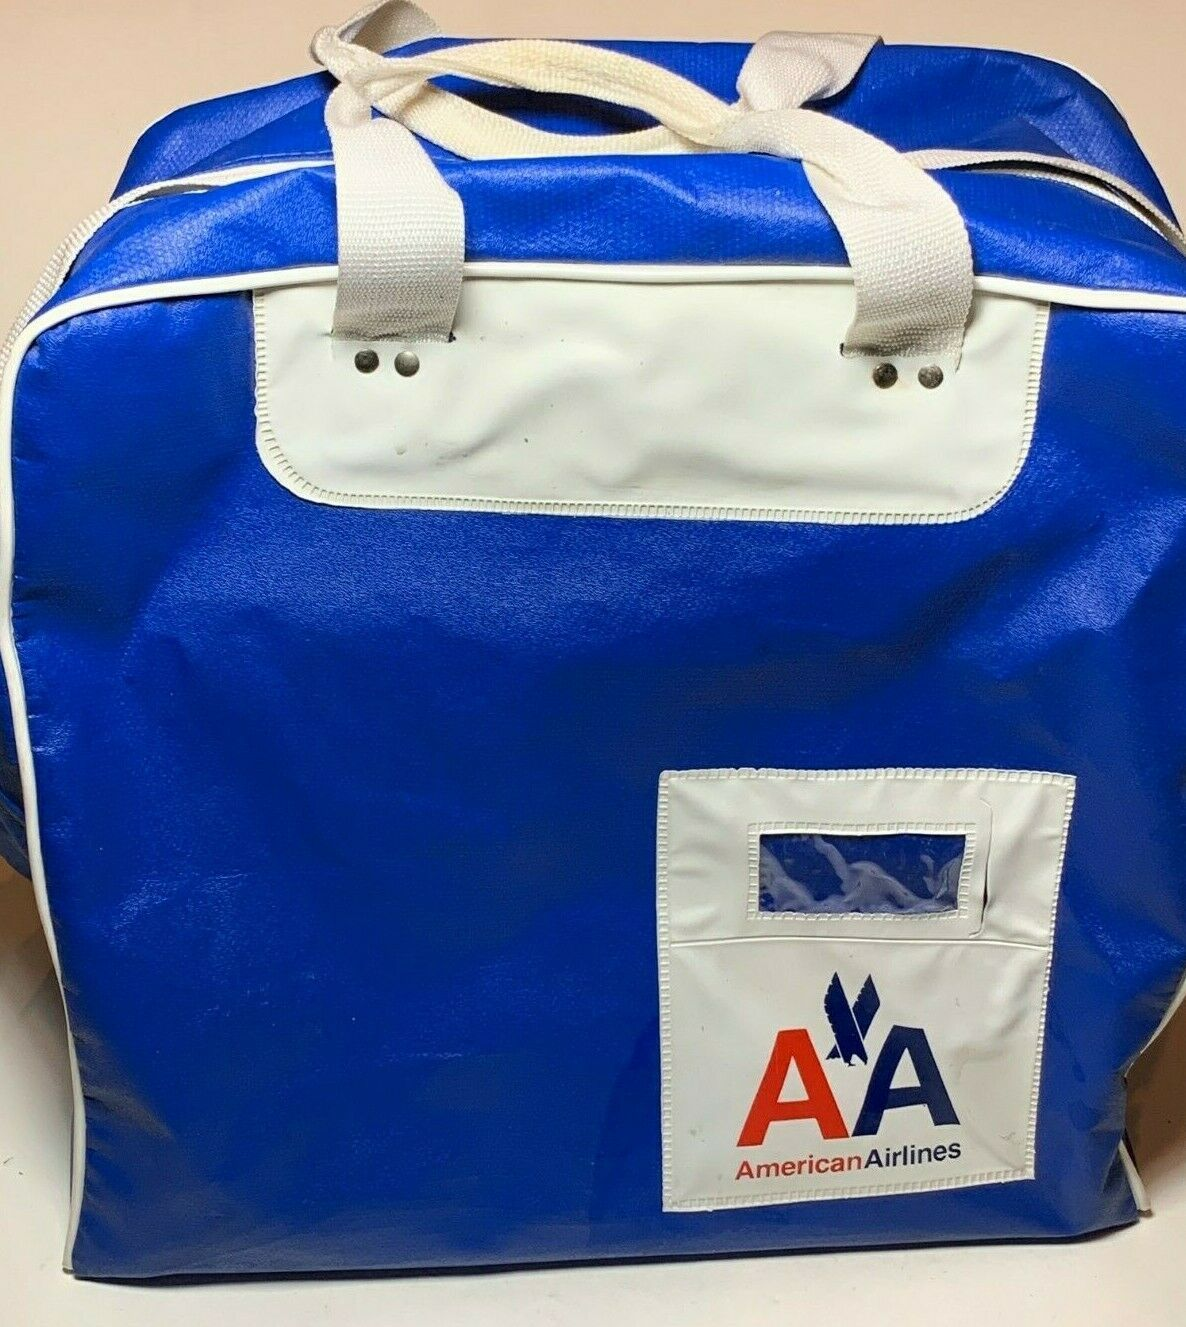 Primary image for Vintage American Airlines Pilot Carry On Travel Bag Suitcase Luggage 15x15x10